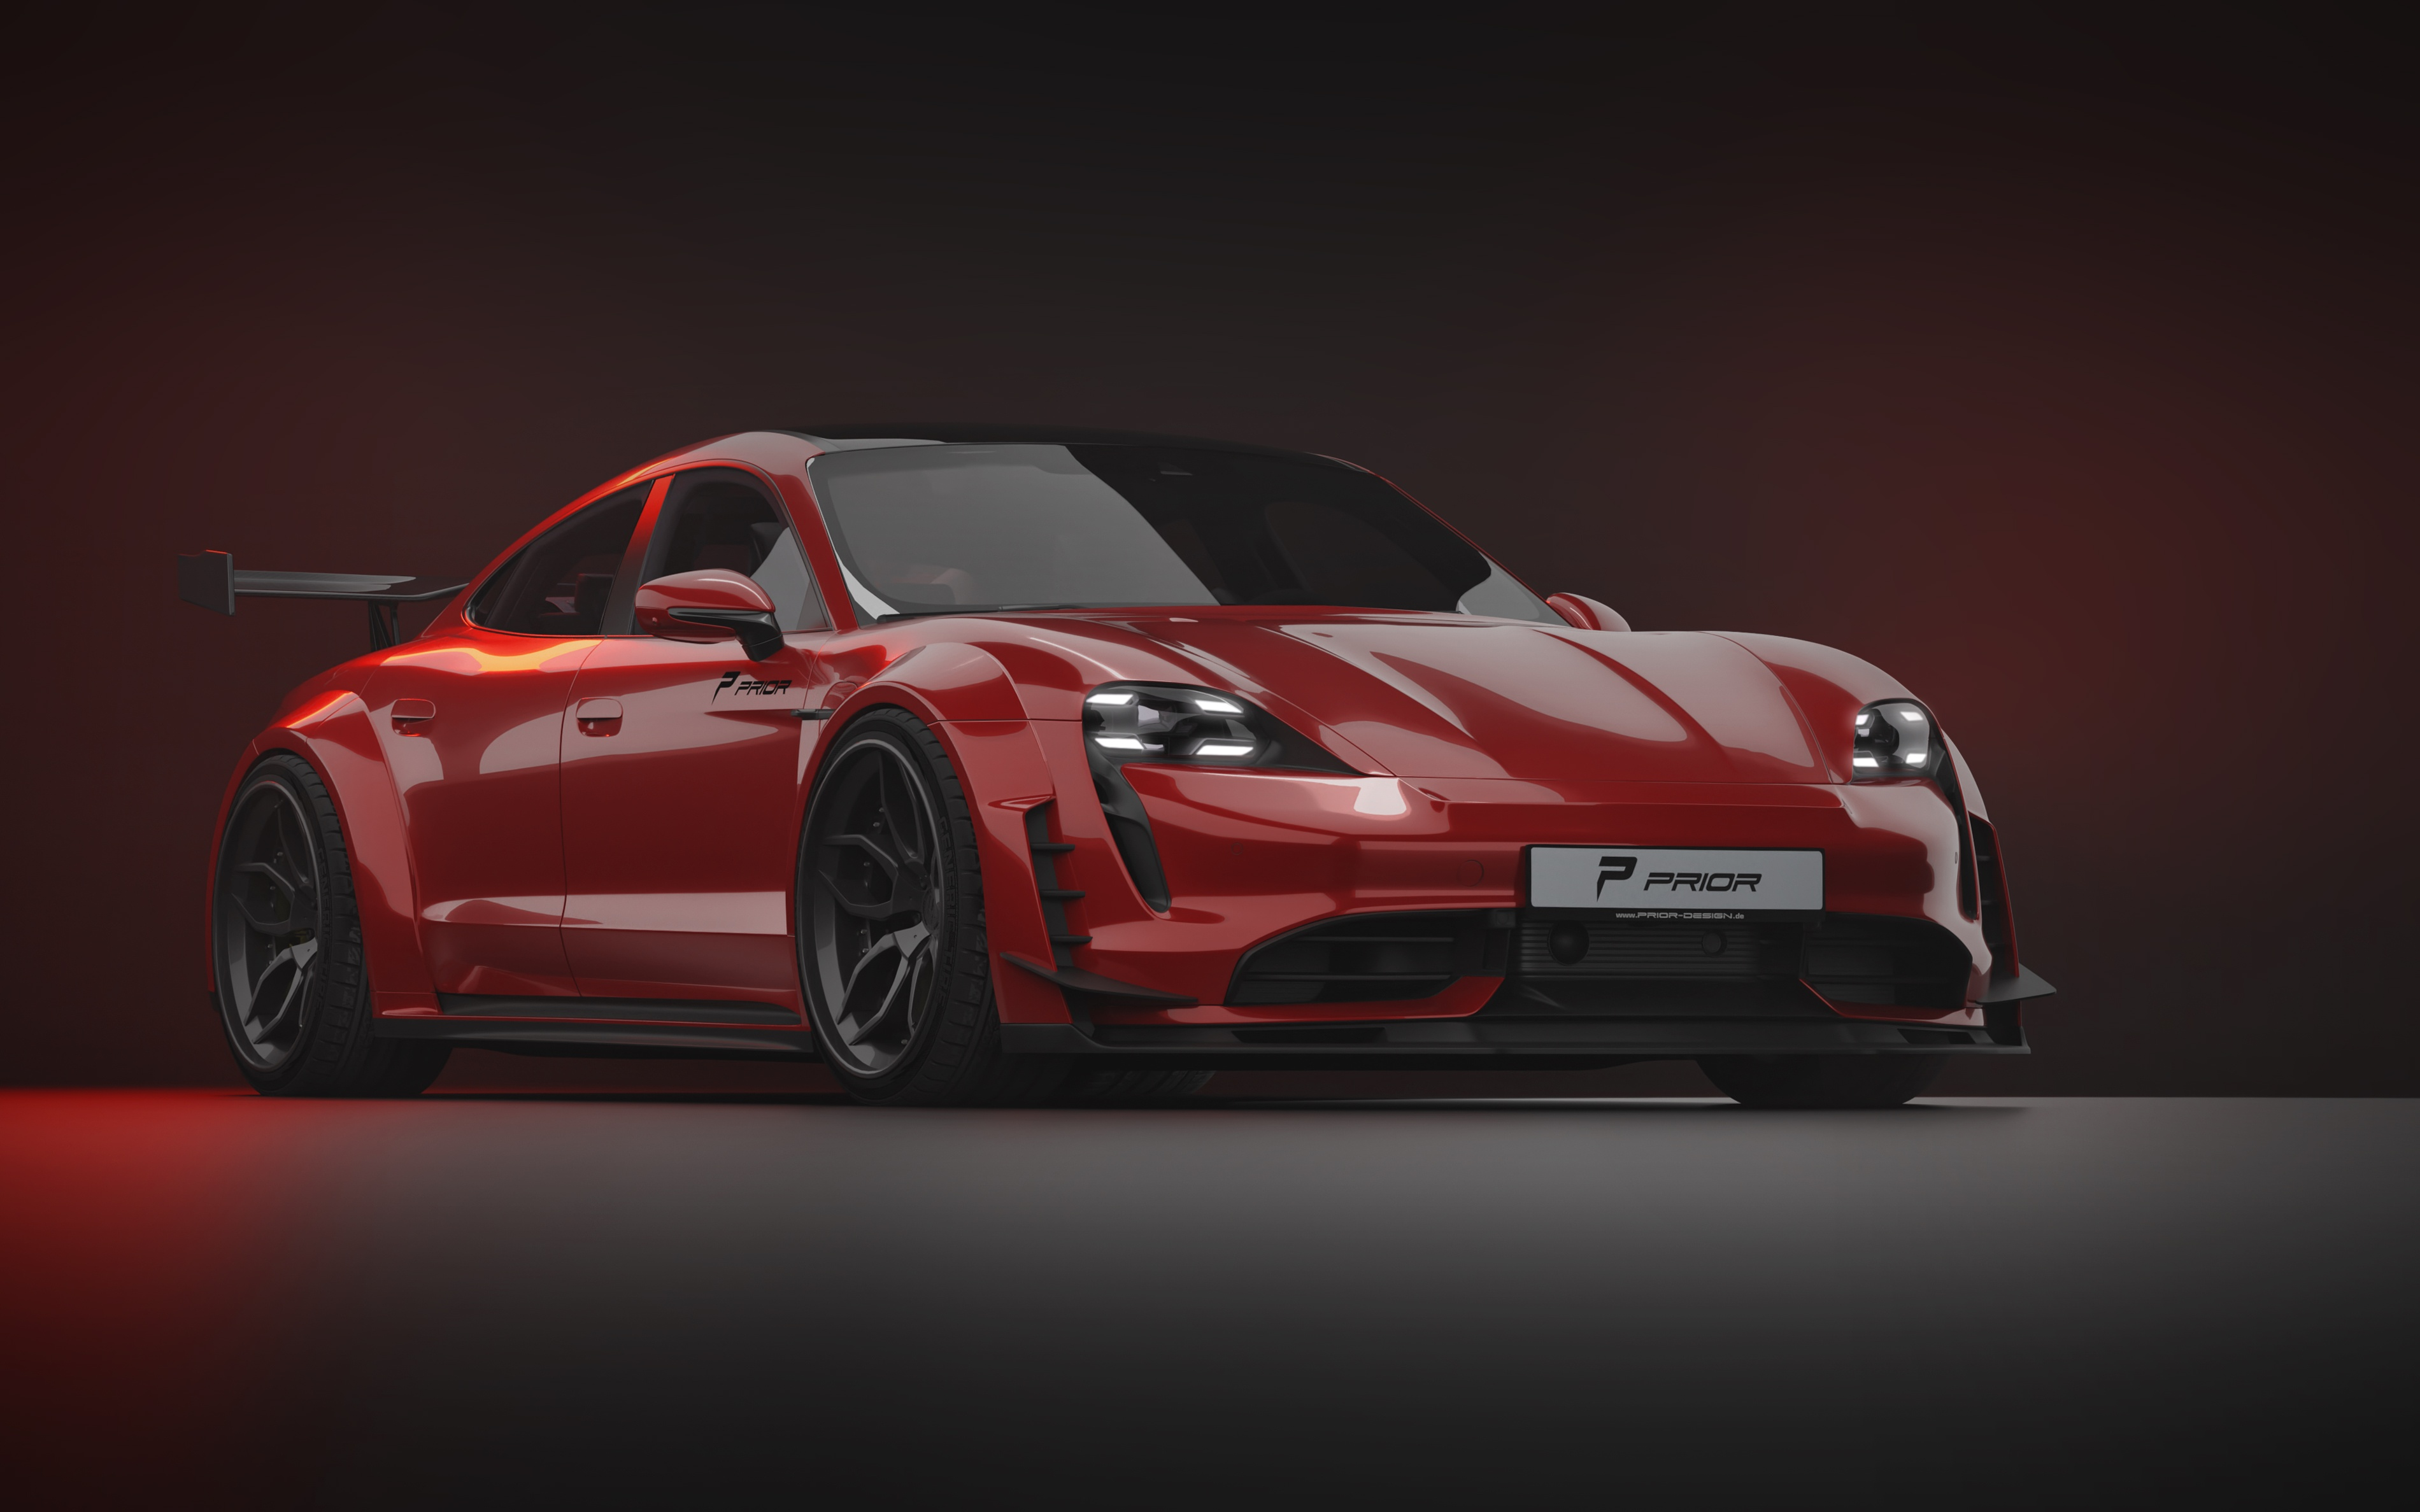 Wide body kit for the Porsche Taycan